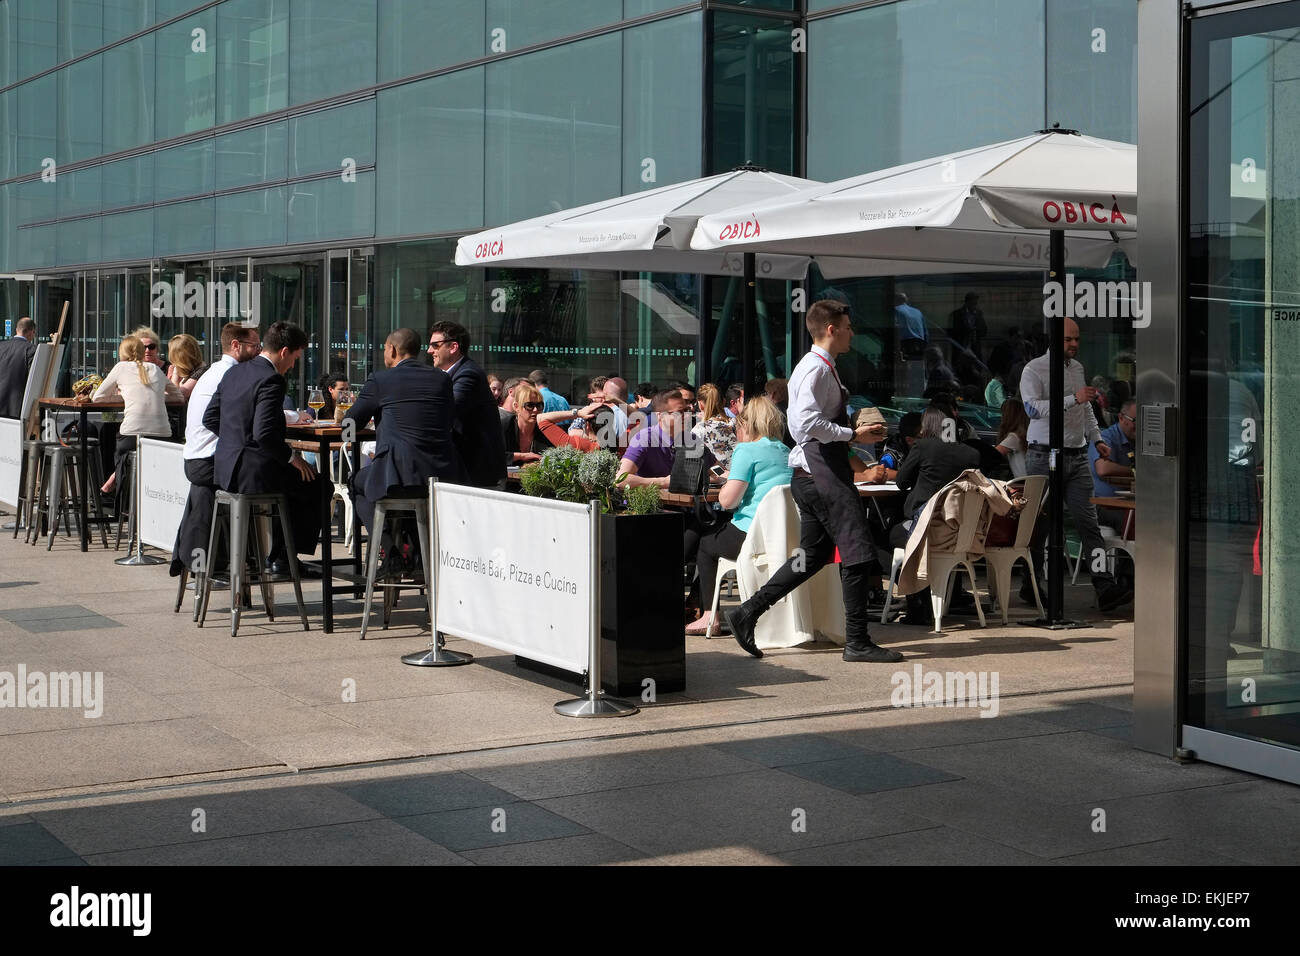 office workers on lunch break, canary wharf, london, england Stock Photo